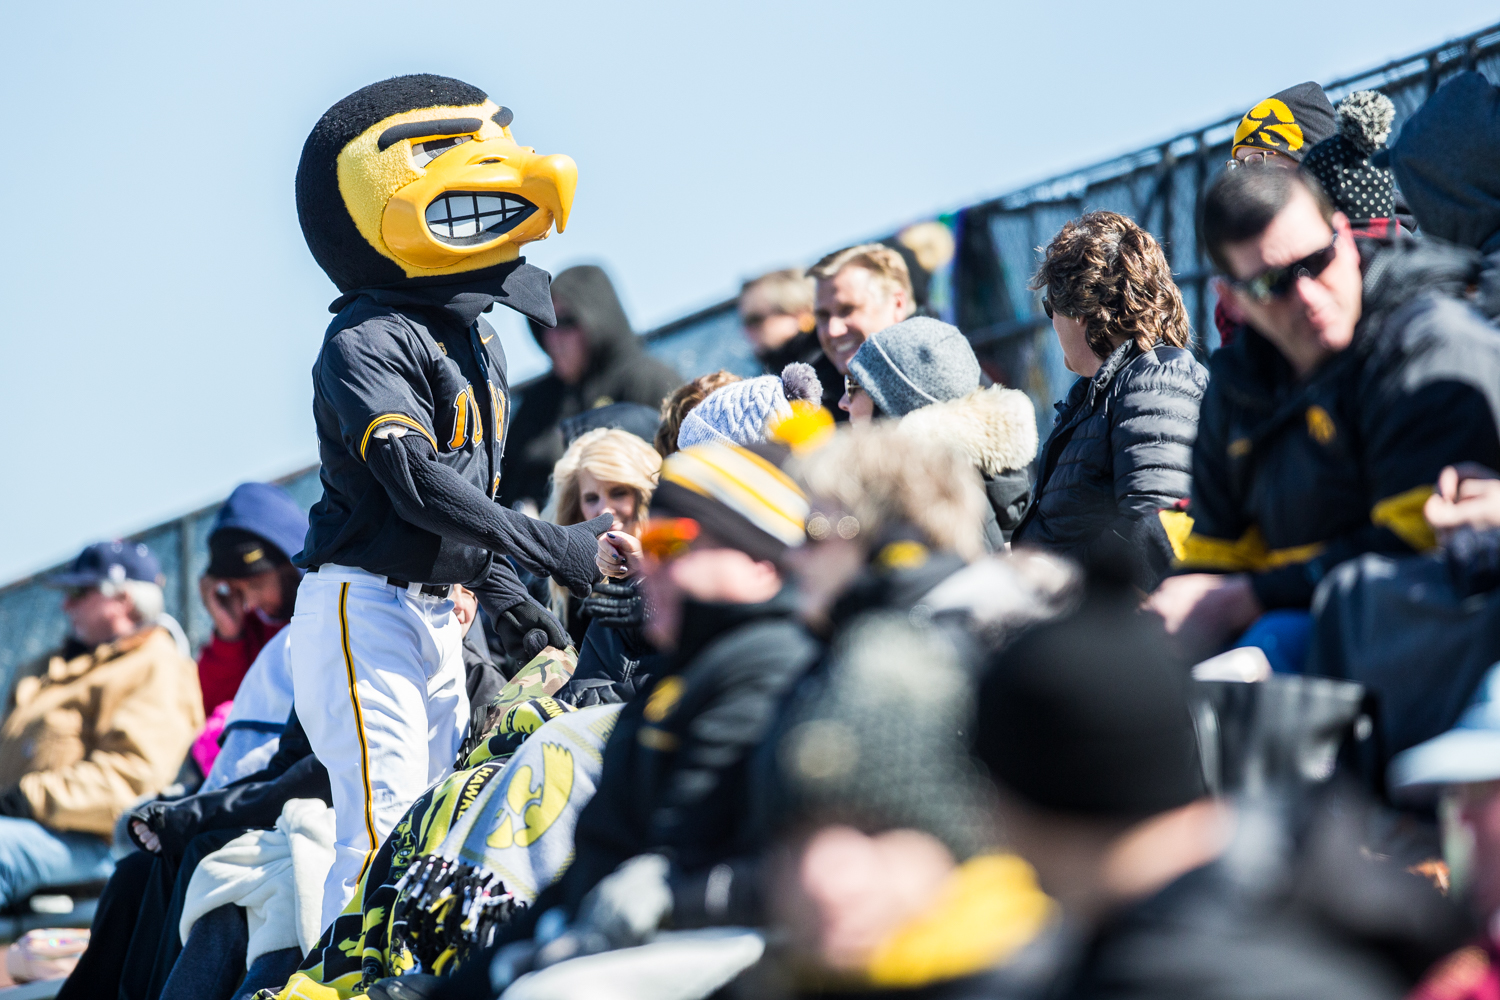 Herky+interacts+with+fans+between+innings+during+the+first+game+of+a+baseball+doubleheader+between+Iowa+and+Cal-State+Northridge+at+Duane+Banks+Field+on+Sunday%2C+March+17%2C+2019.+The+Hawkeyes+defeated+the+Matadors%2C+5-4.